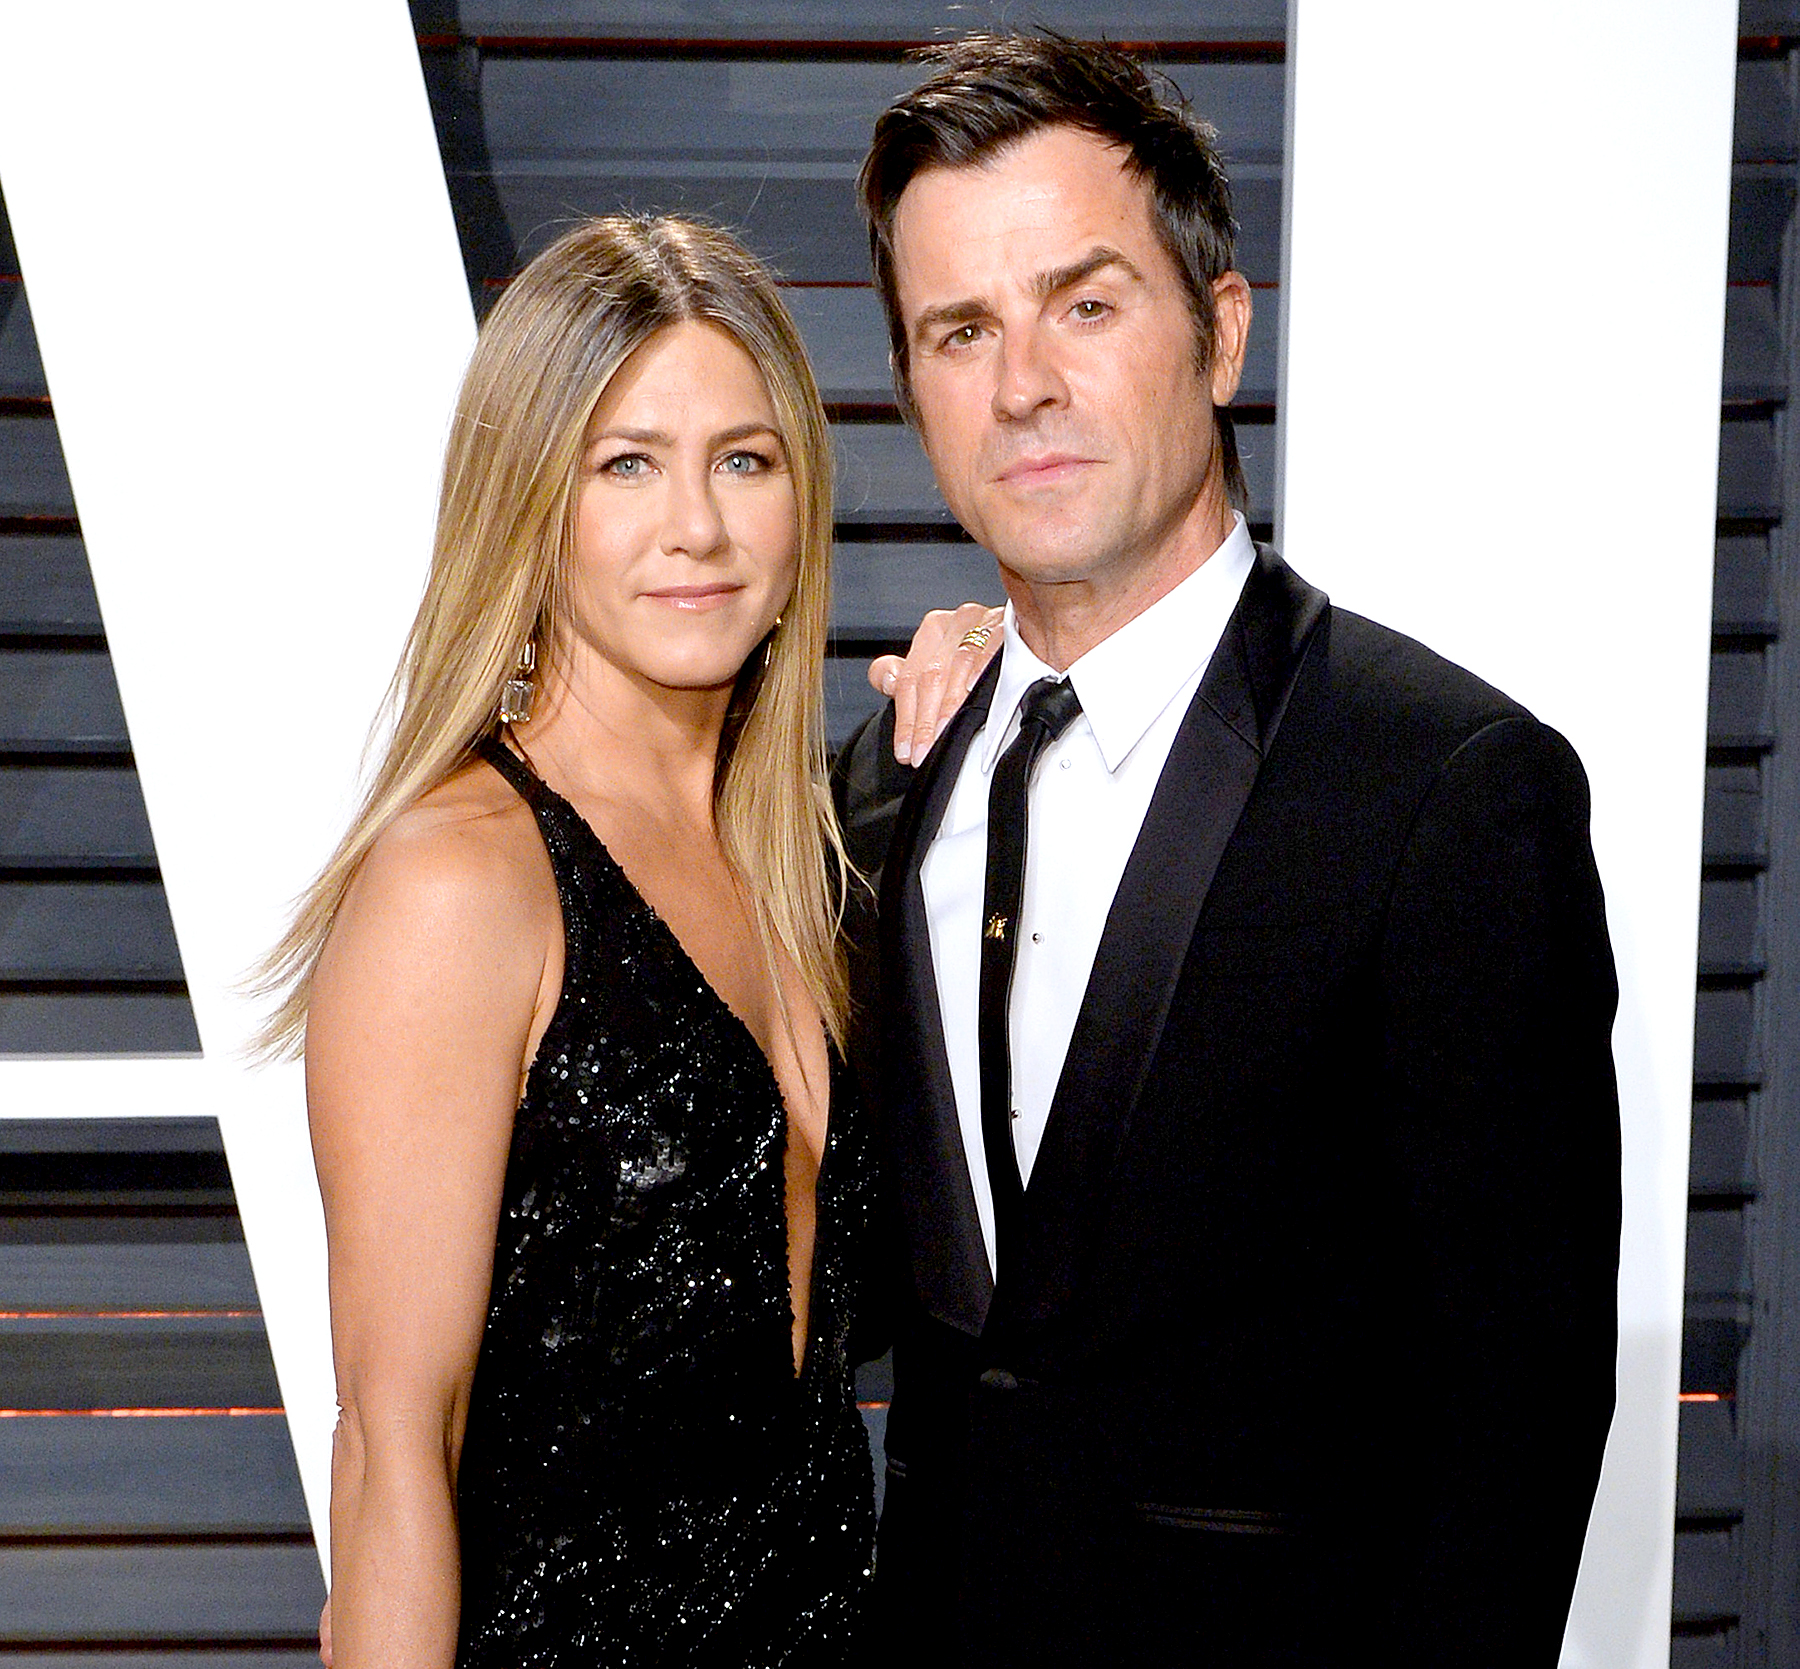 Aniston and Theroux together for the first time came out after the wedding